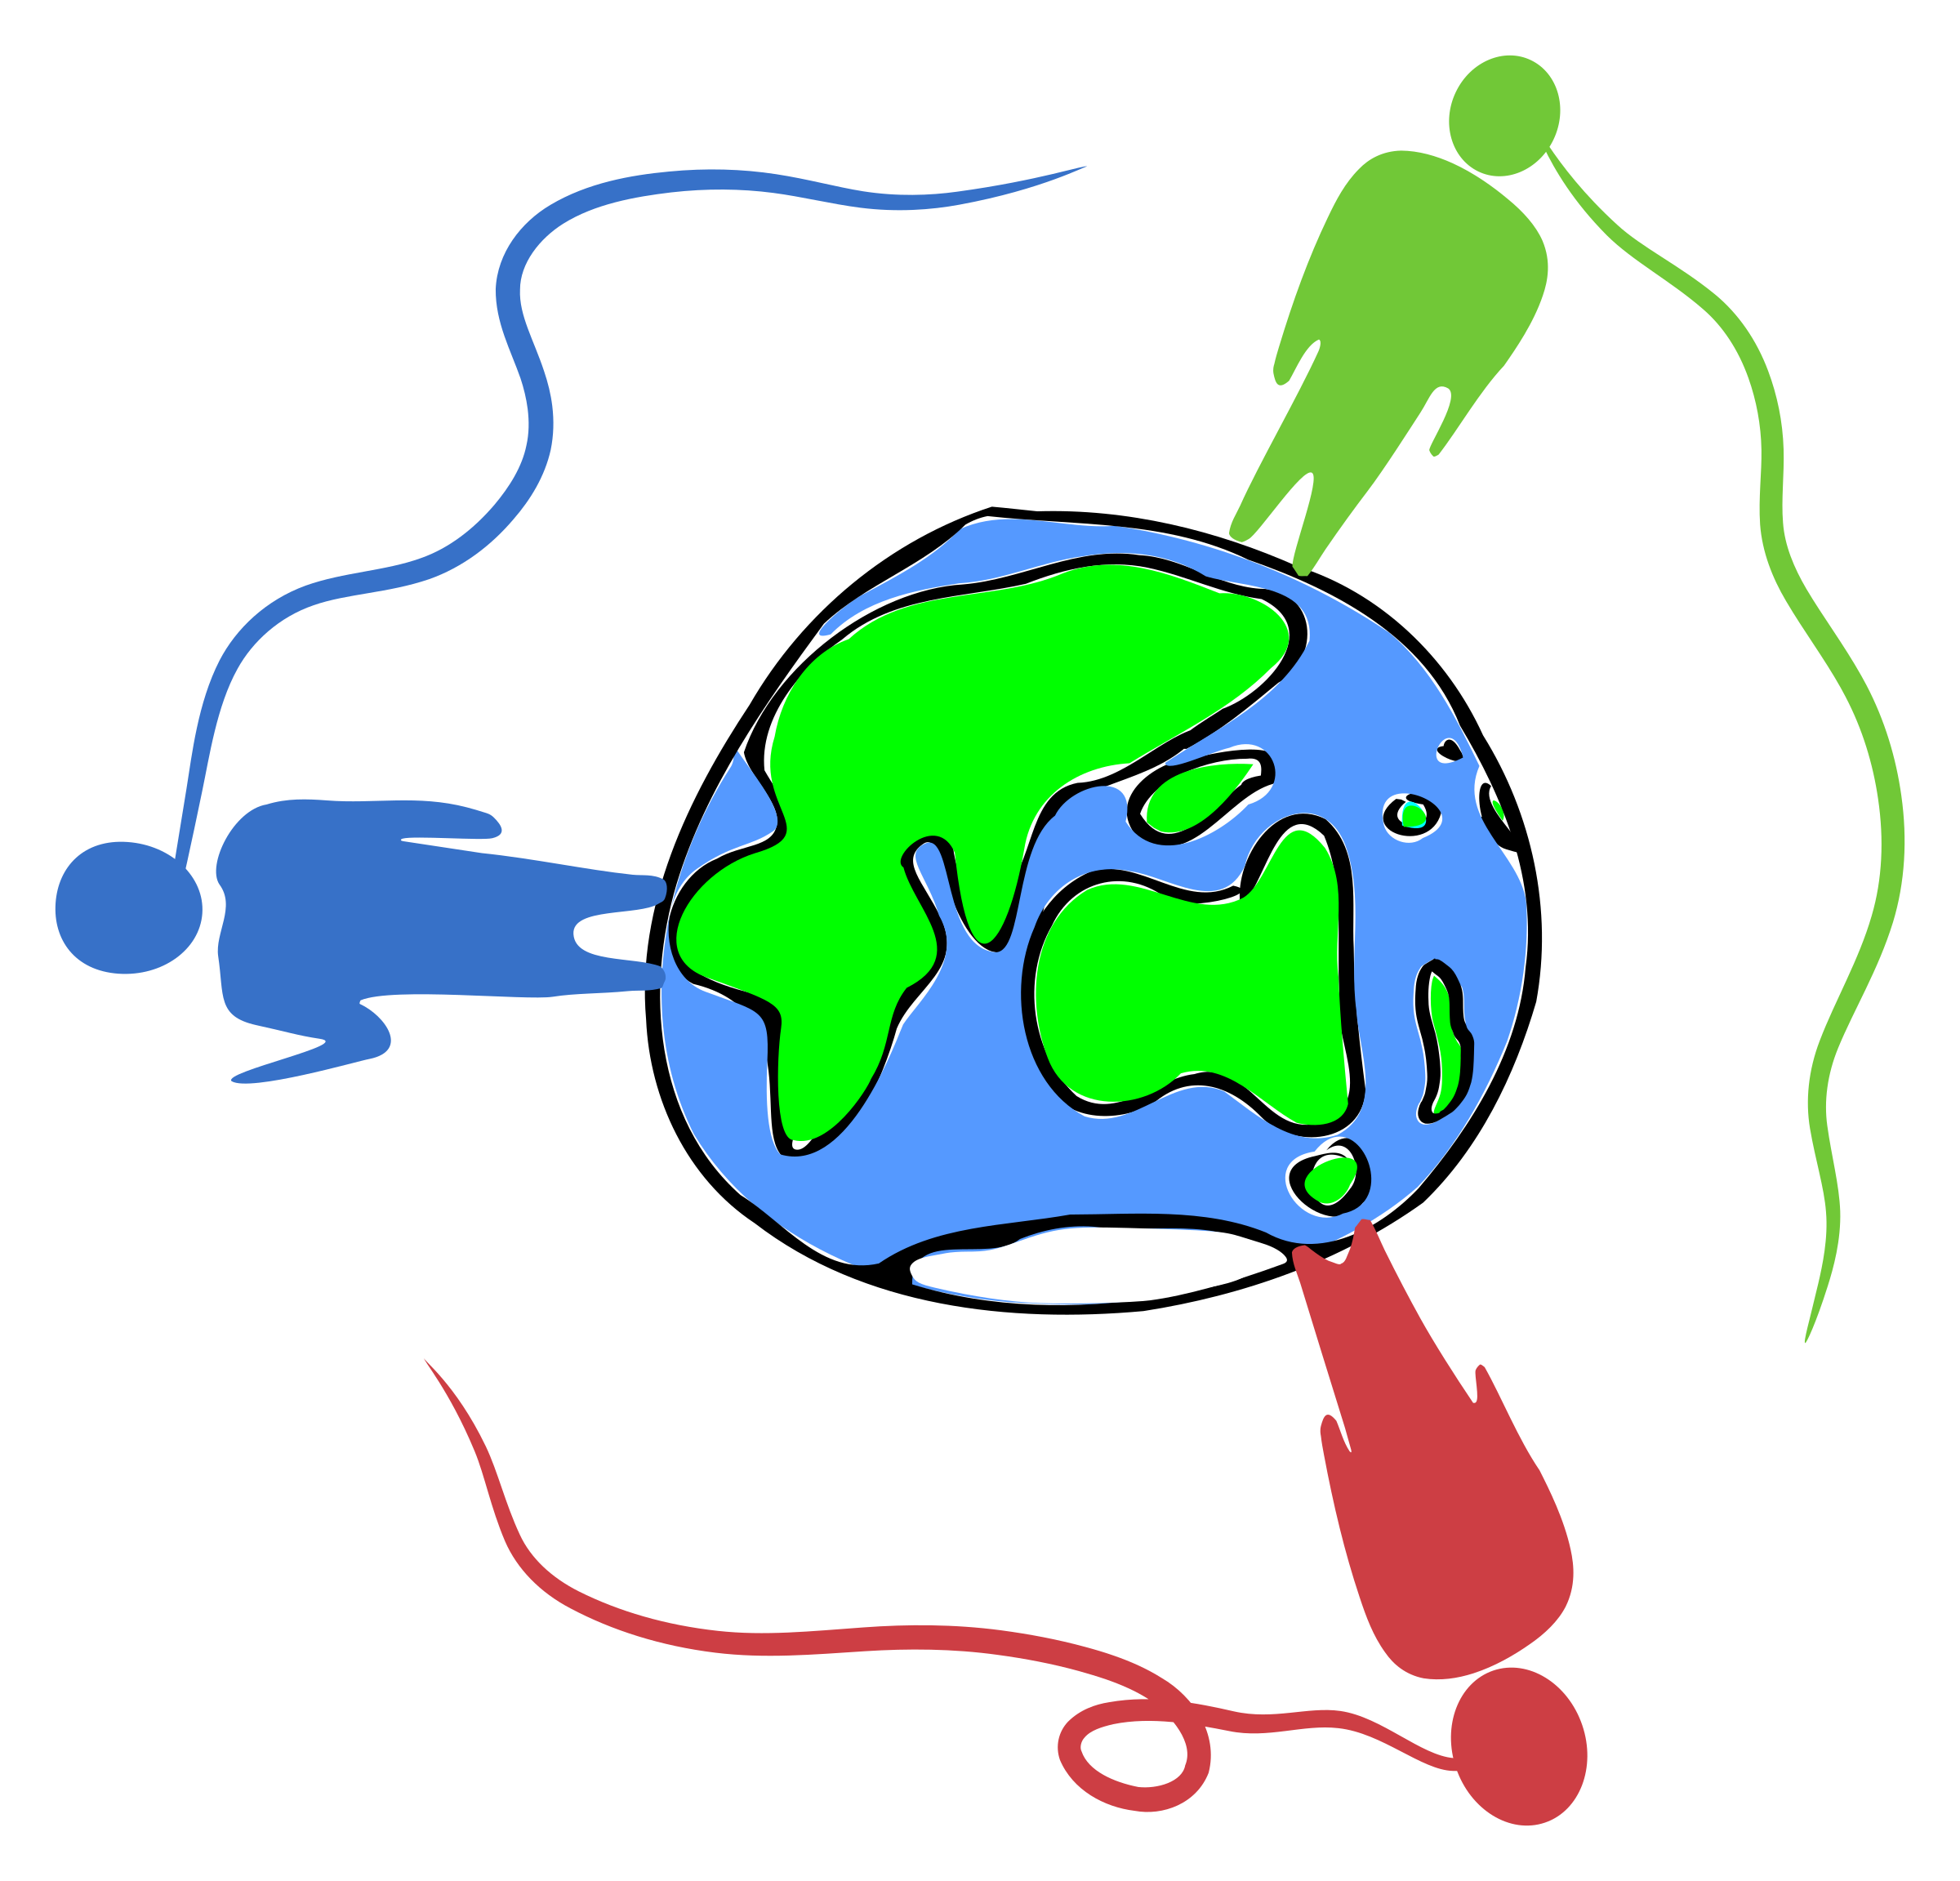 Planet clipart diagram. Communicate big image png